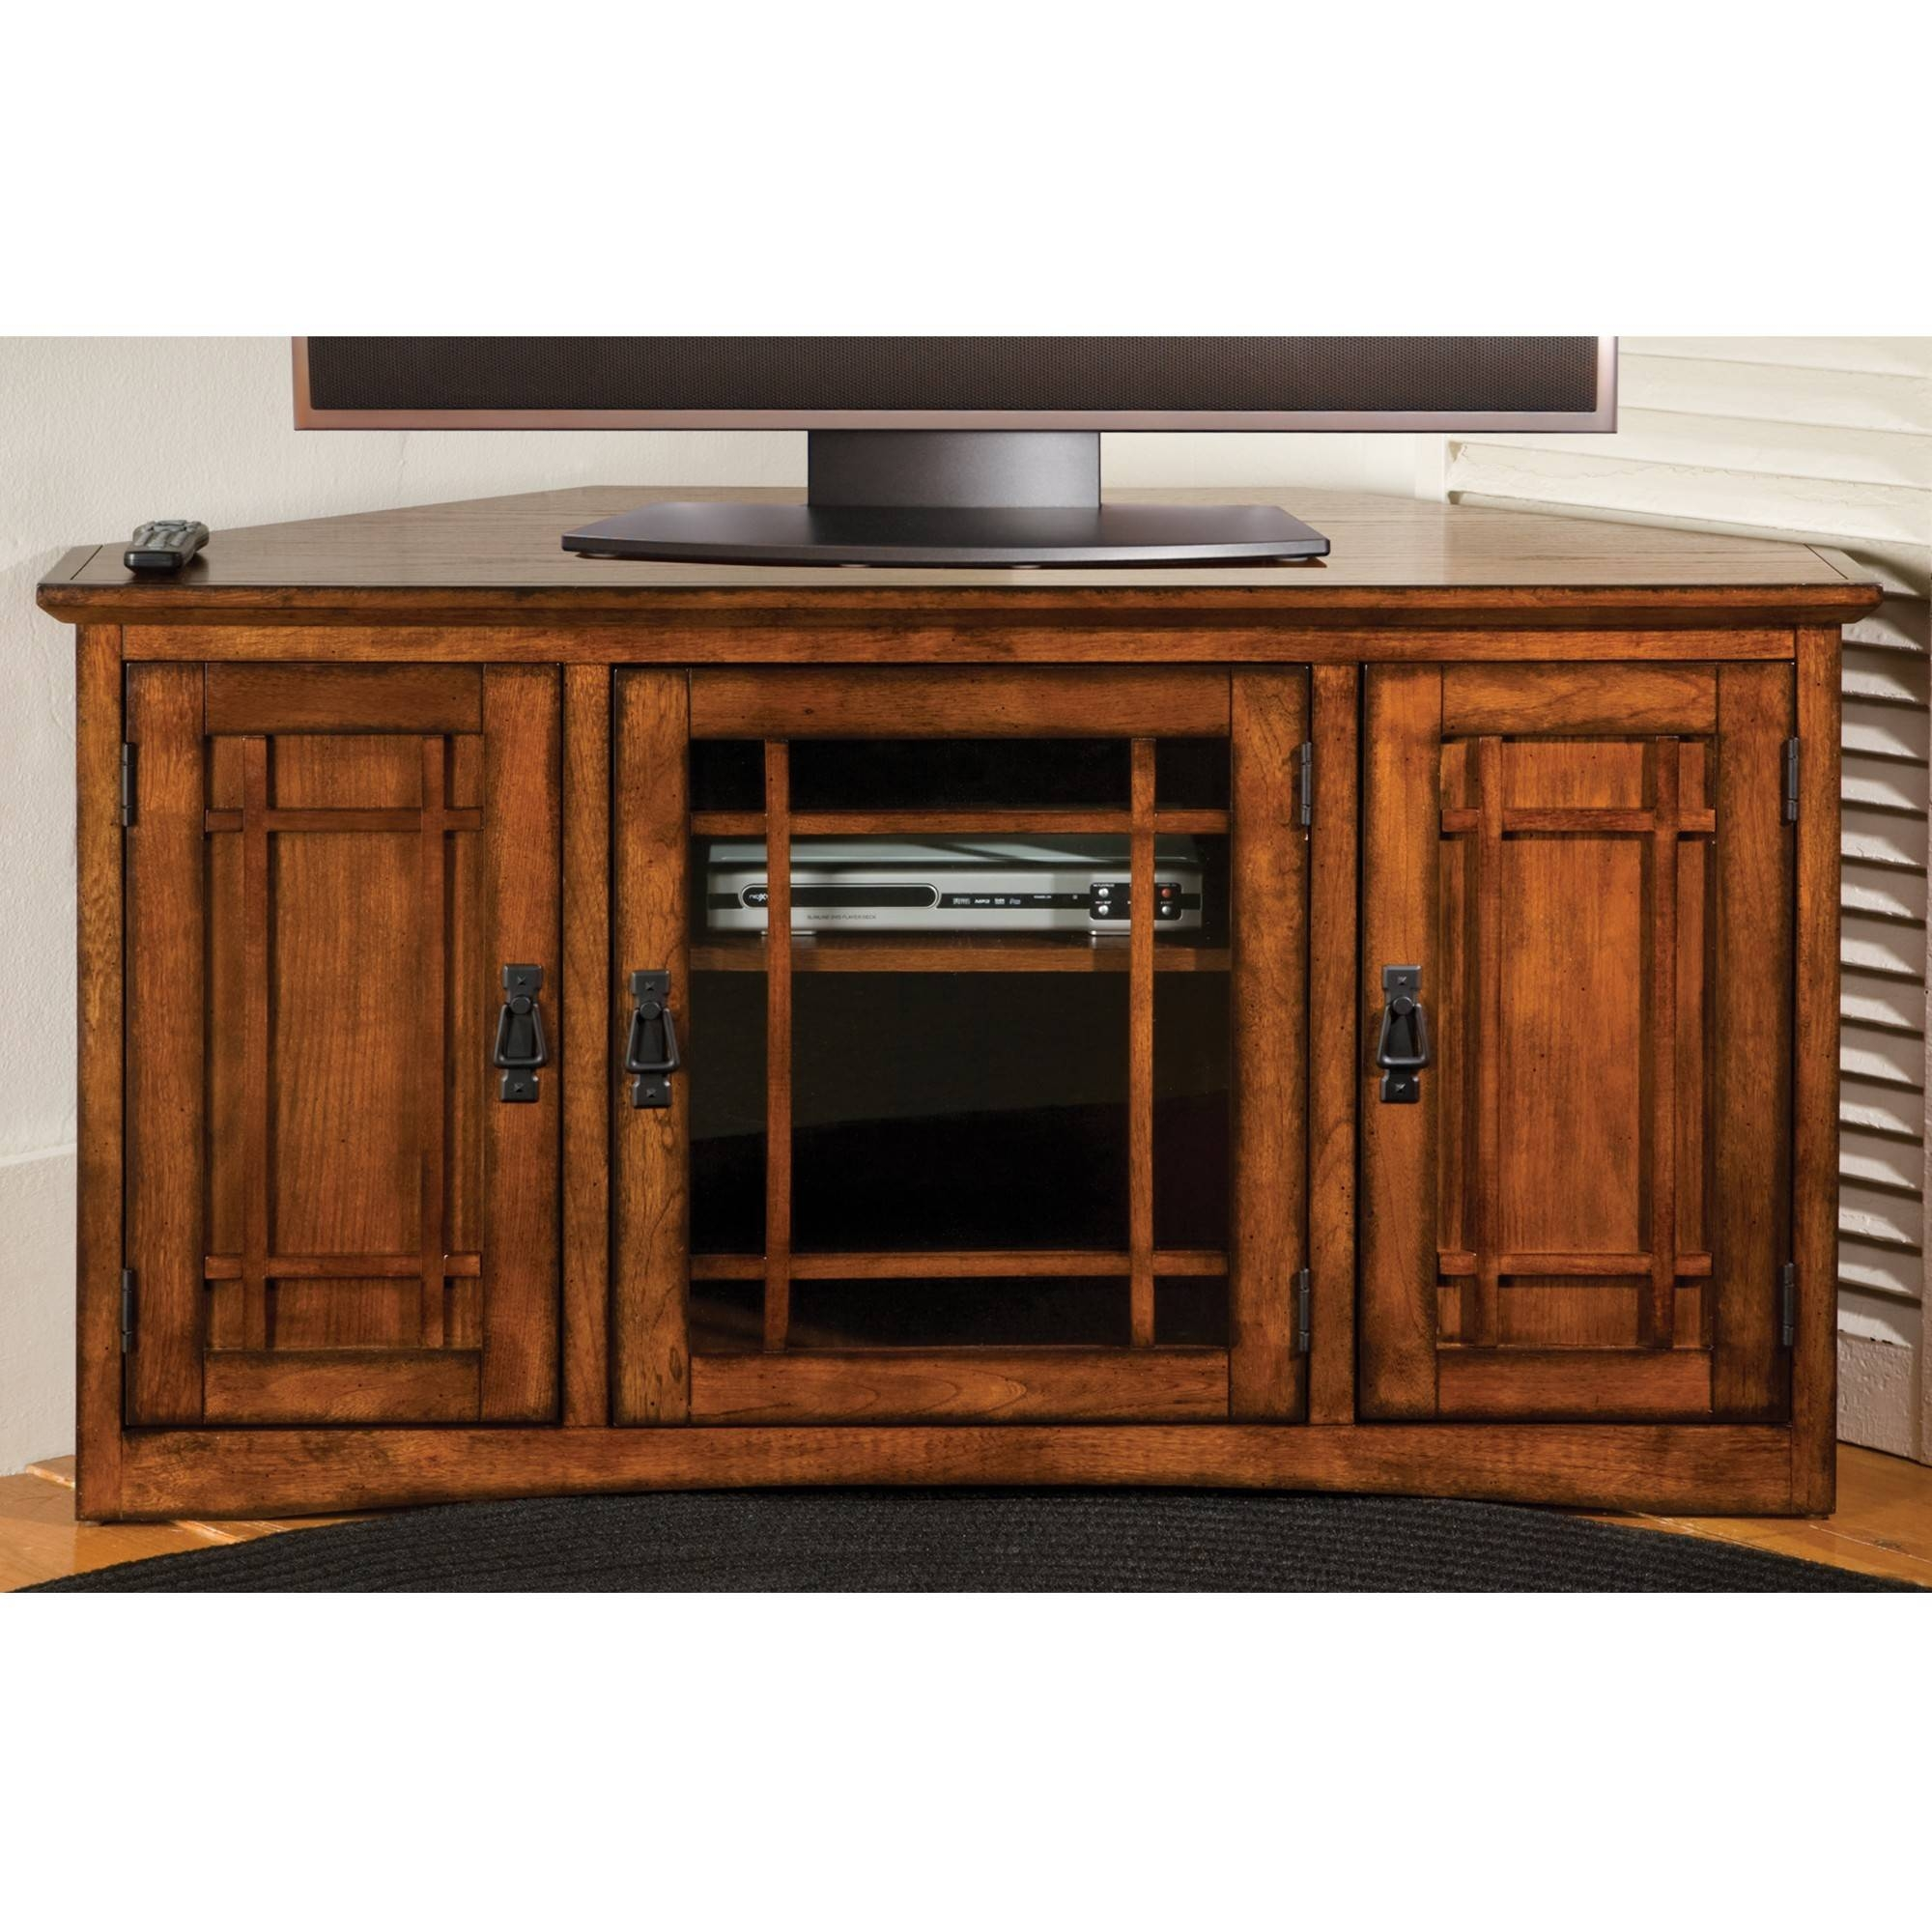 Mission Corner Tv Cabinet | Sturbridge Yankee Workshop pertaining to Glass Tv Cabinets With Doors (Image 12 of 15)